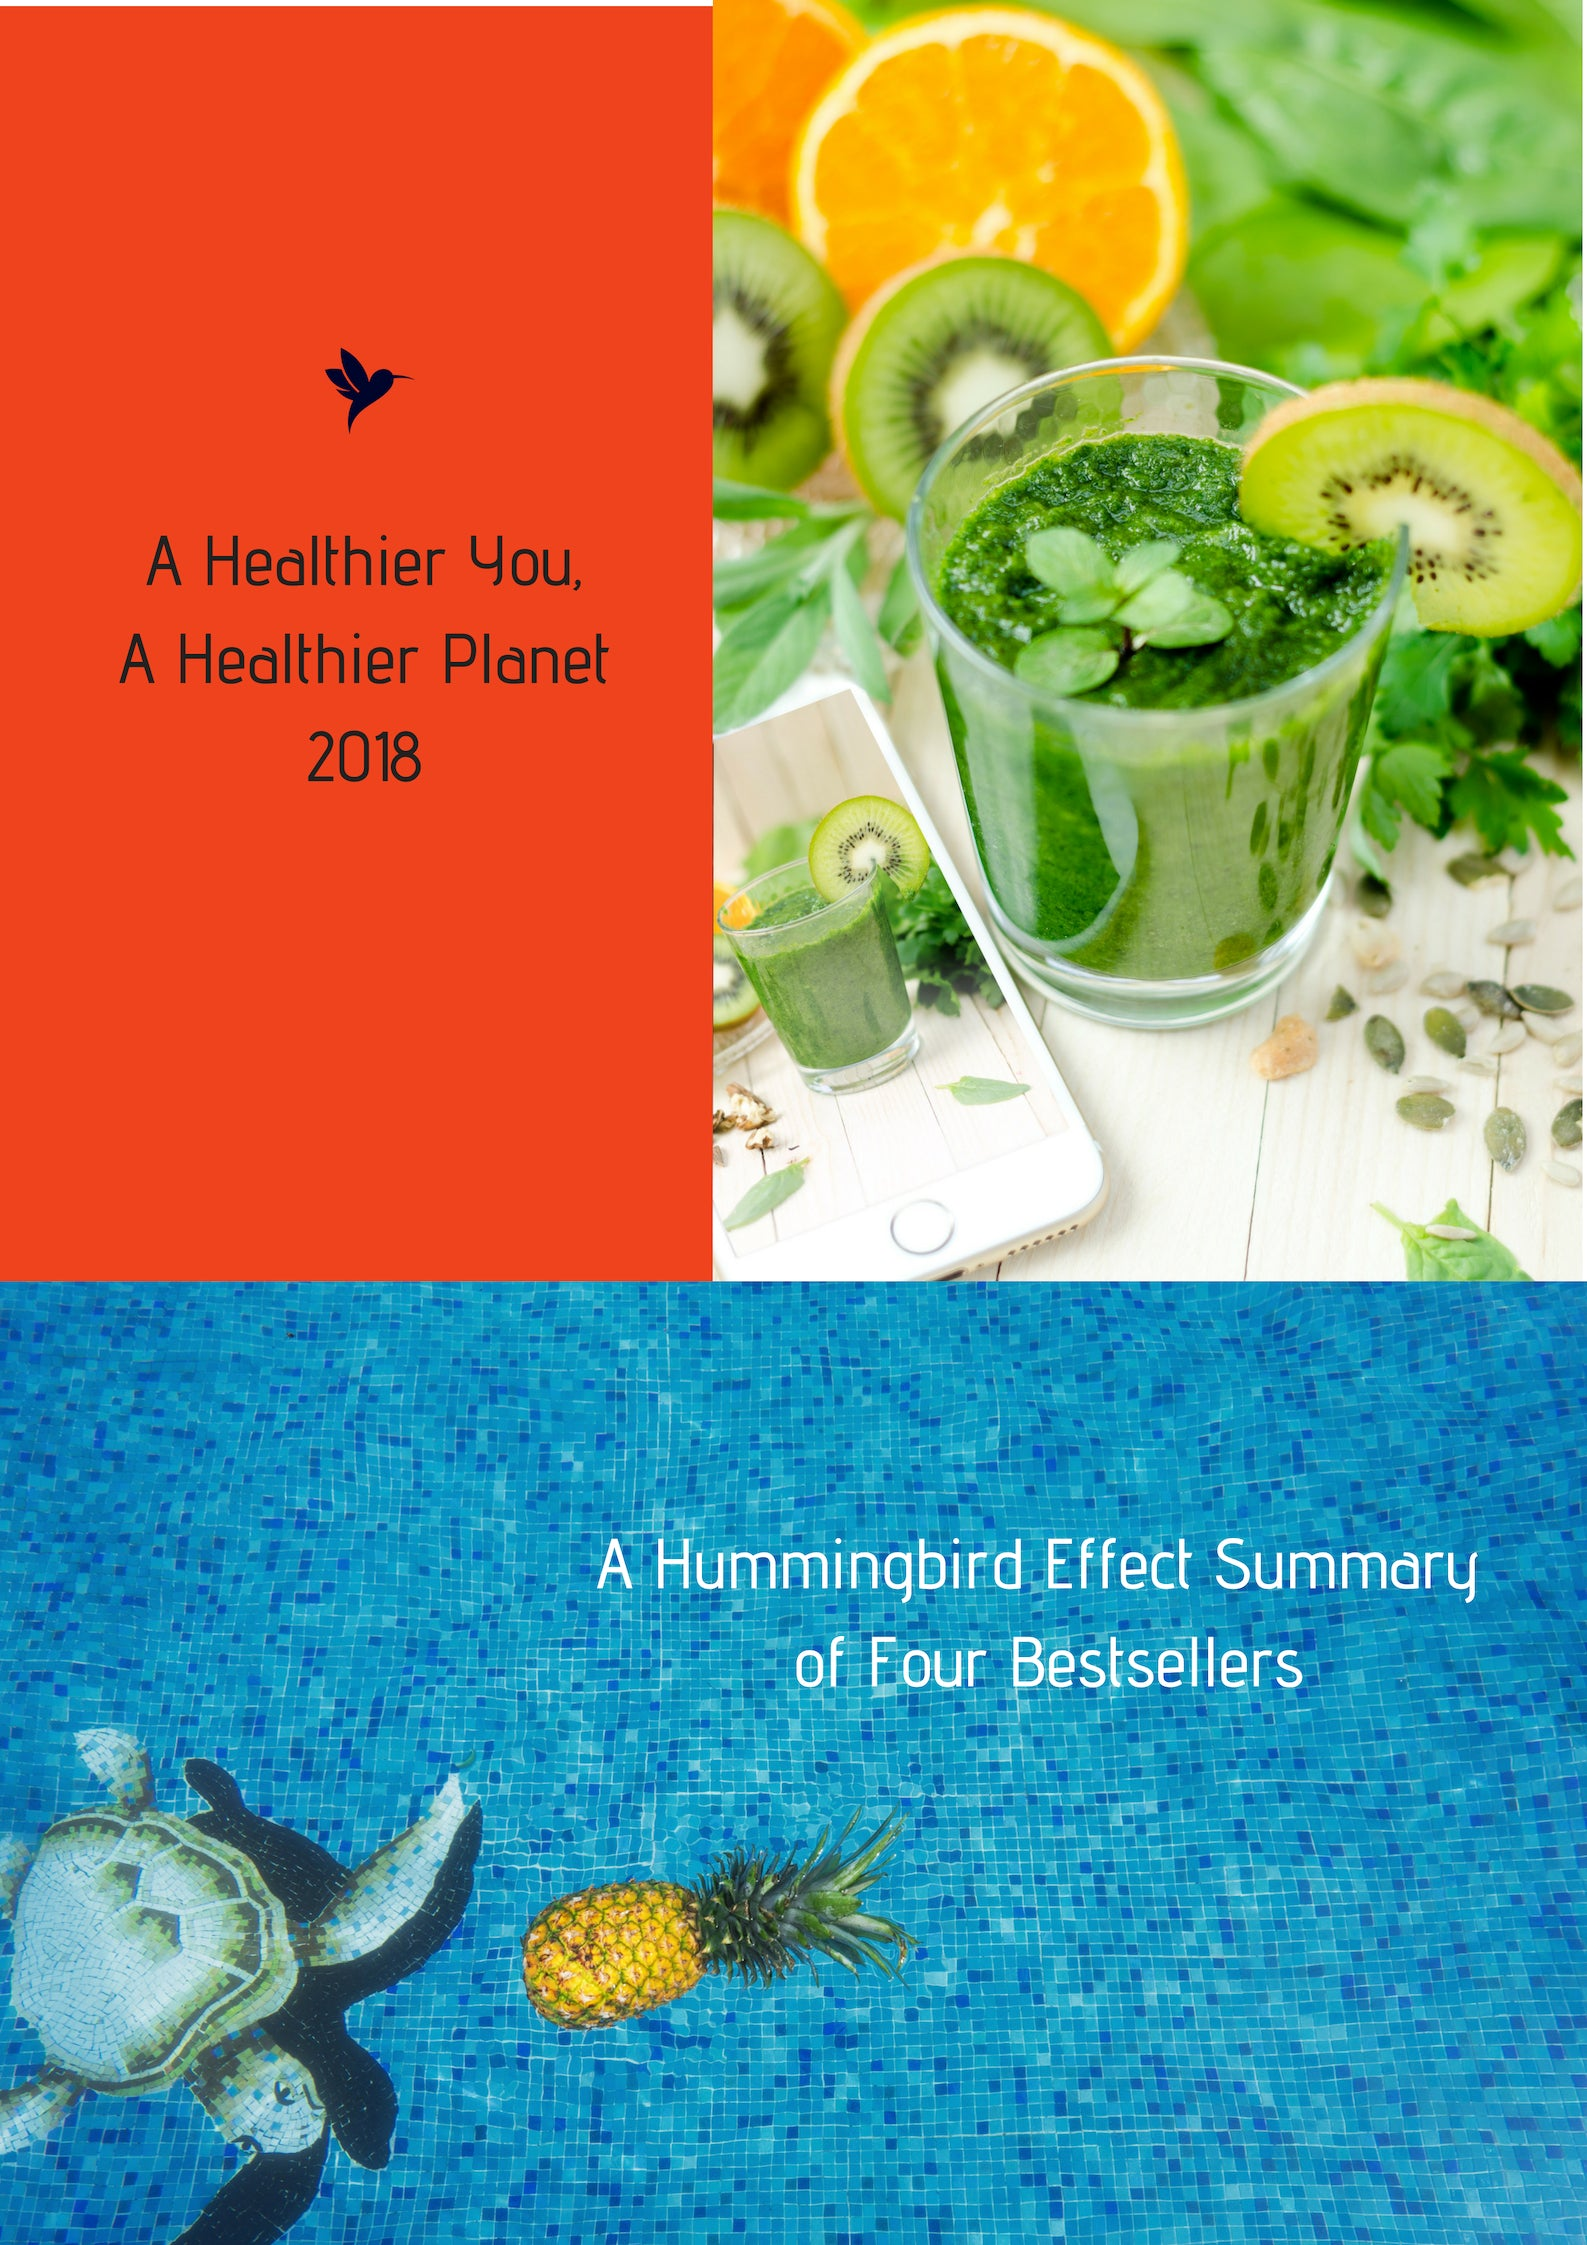 """A Healthier You, A Healthier Planet"" Summary of Four Bestsellers - The Hummingbird Effect"